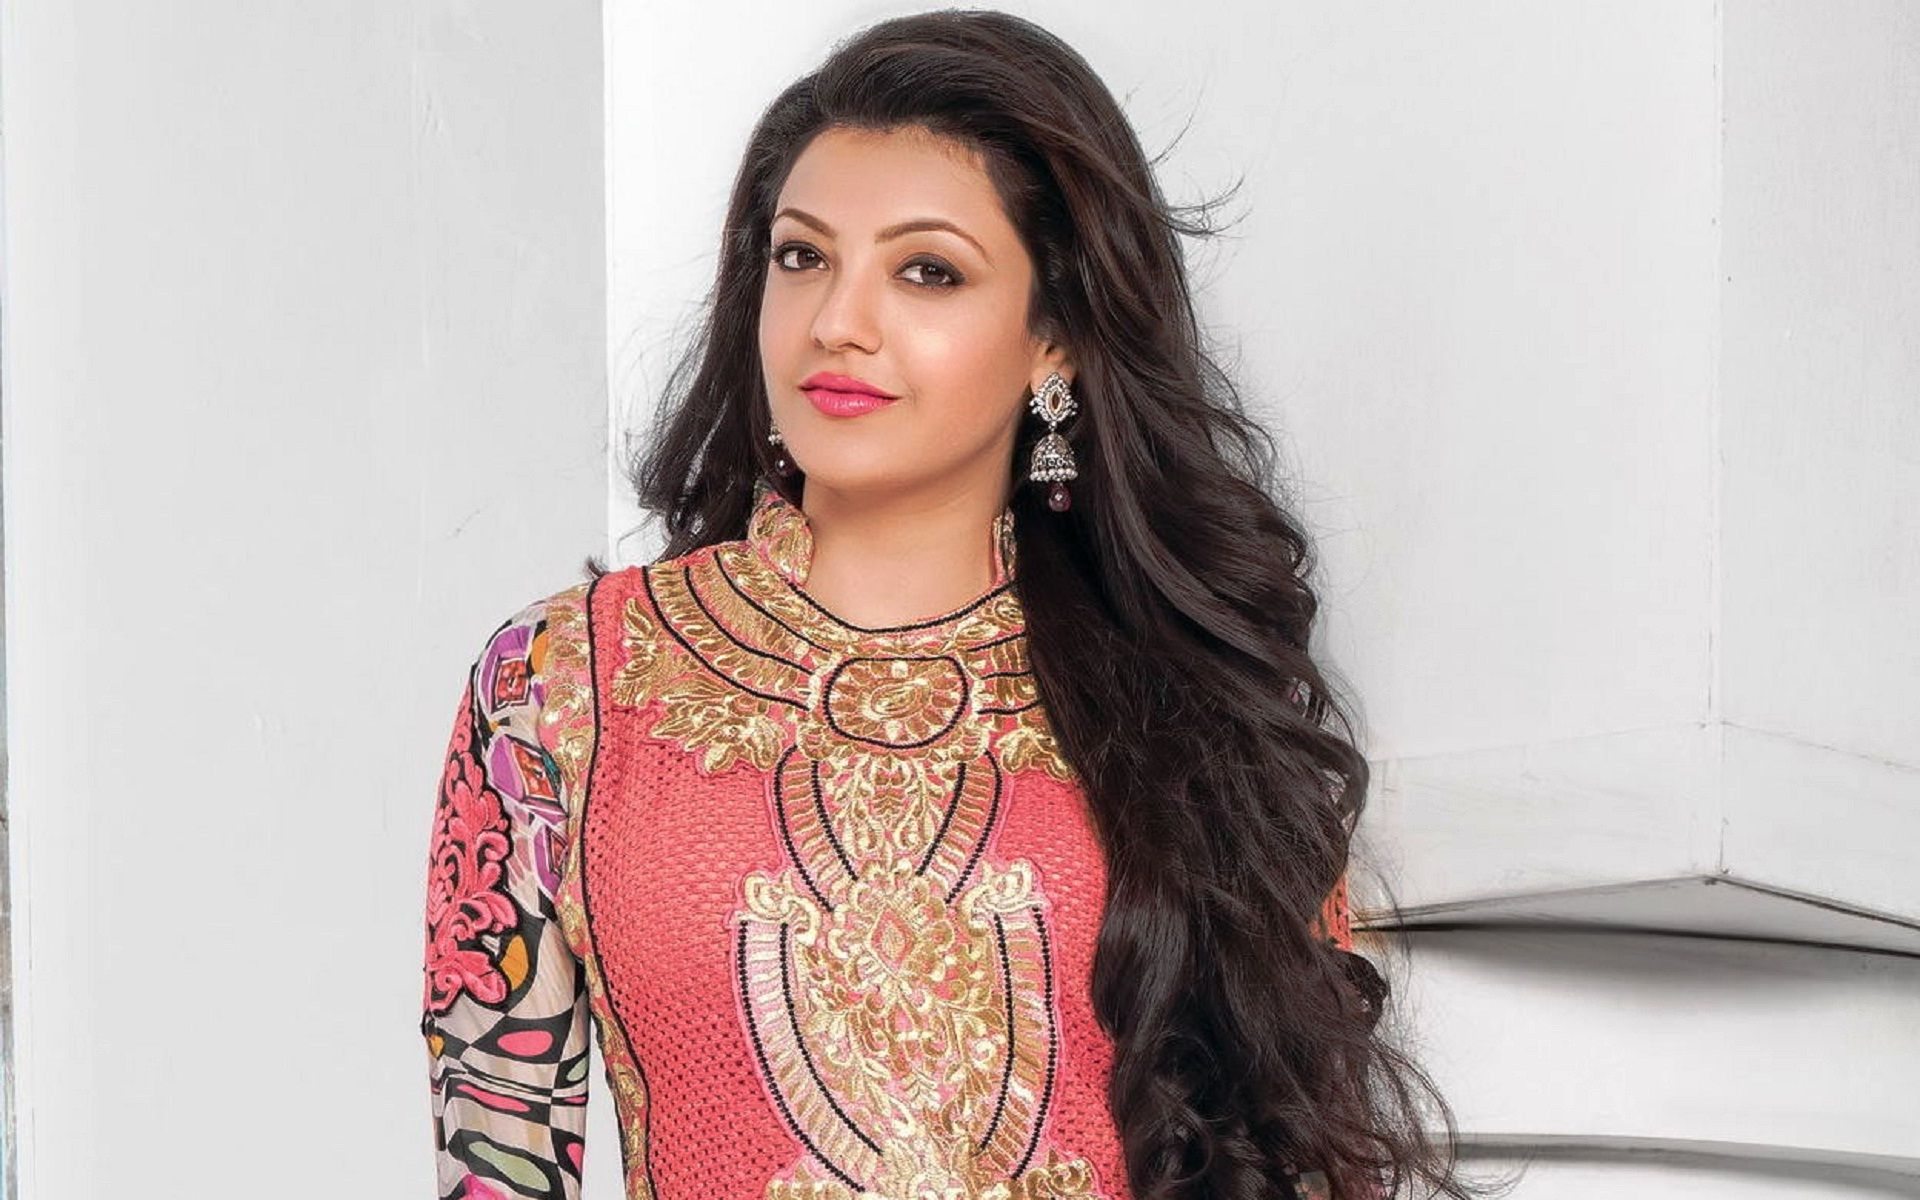 kajal agarwal wallpapers collection for free download | hd